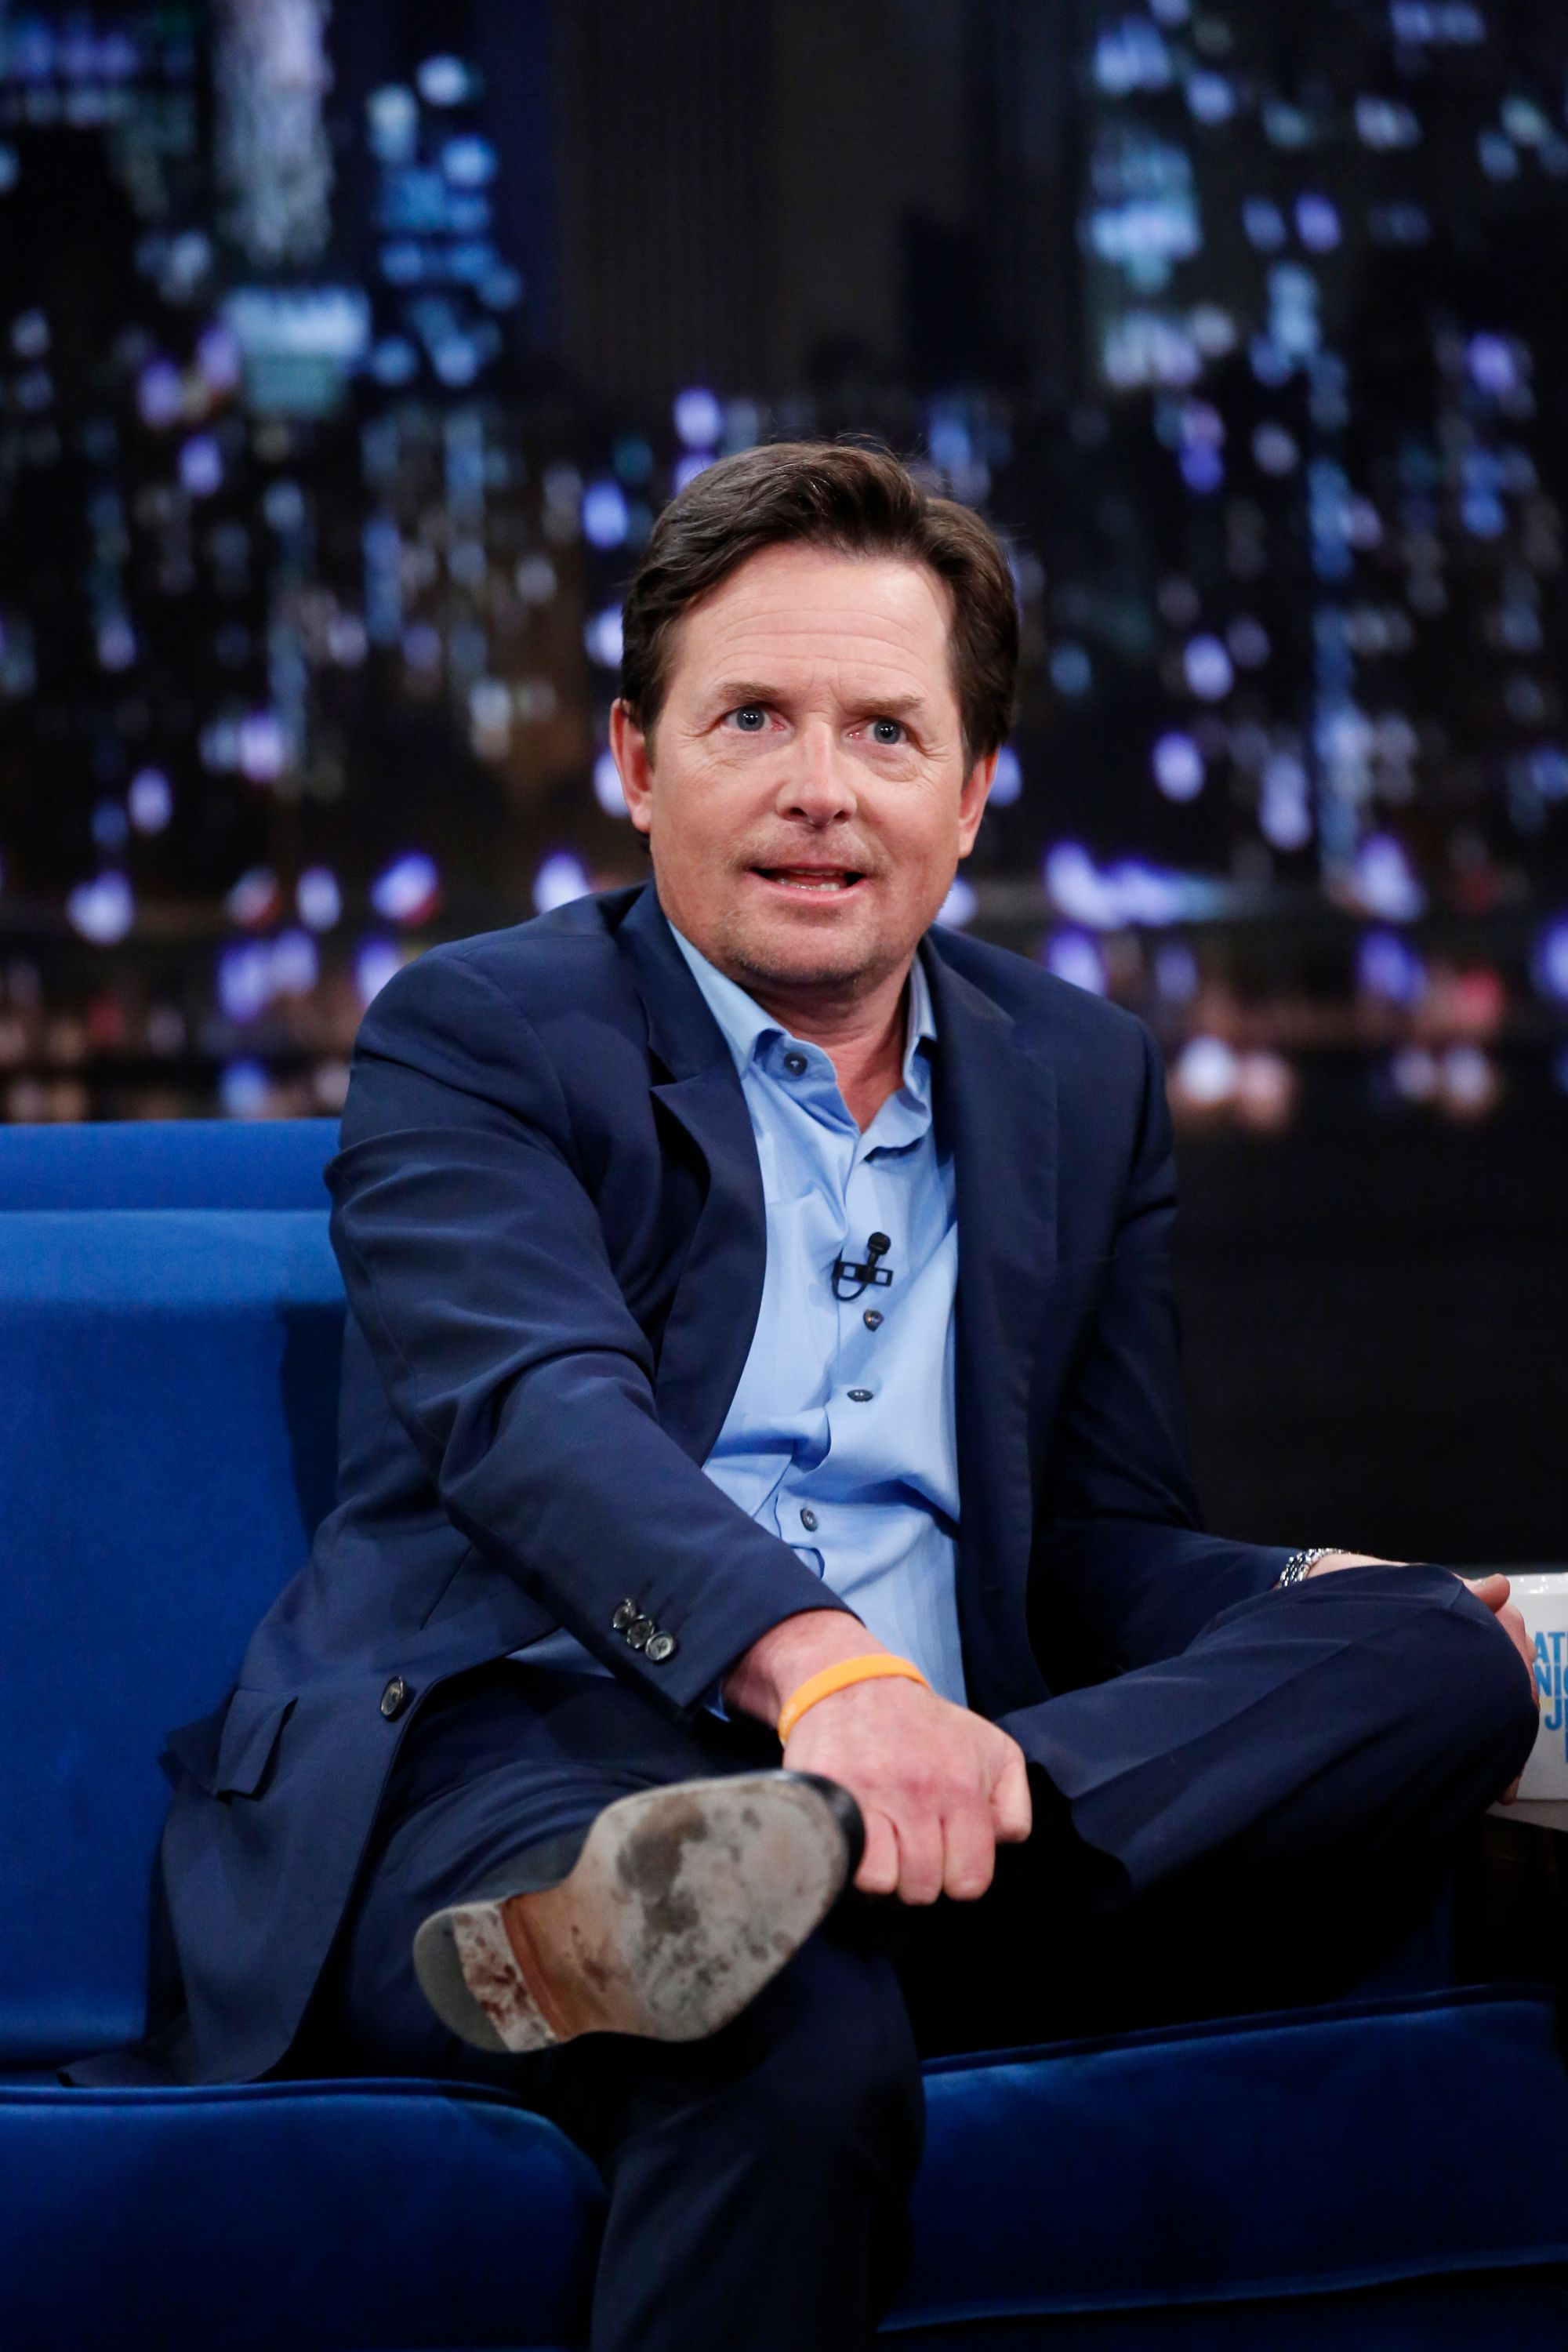 """Michael J. Fox on season 5 of the """"Late Night with Jimmy Fallon"""" on September 25, 2013 